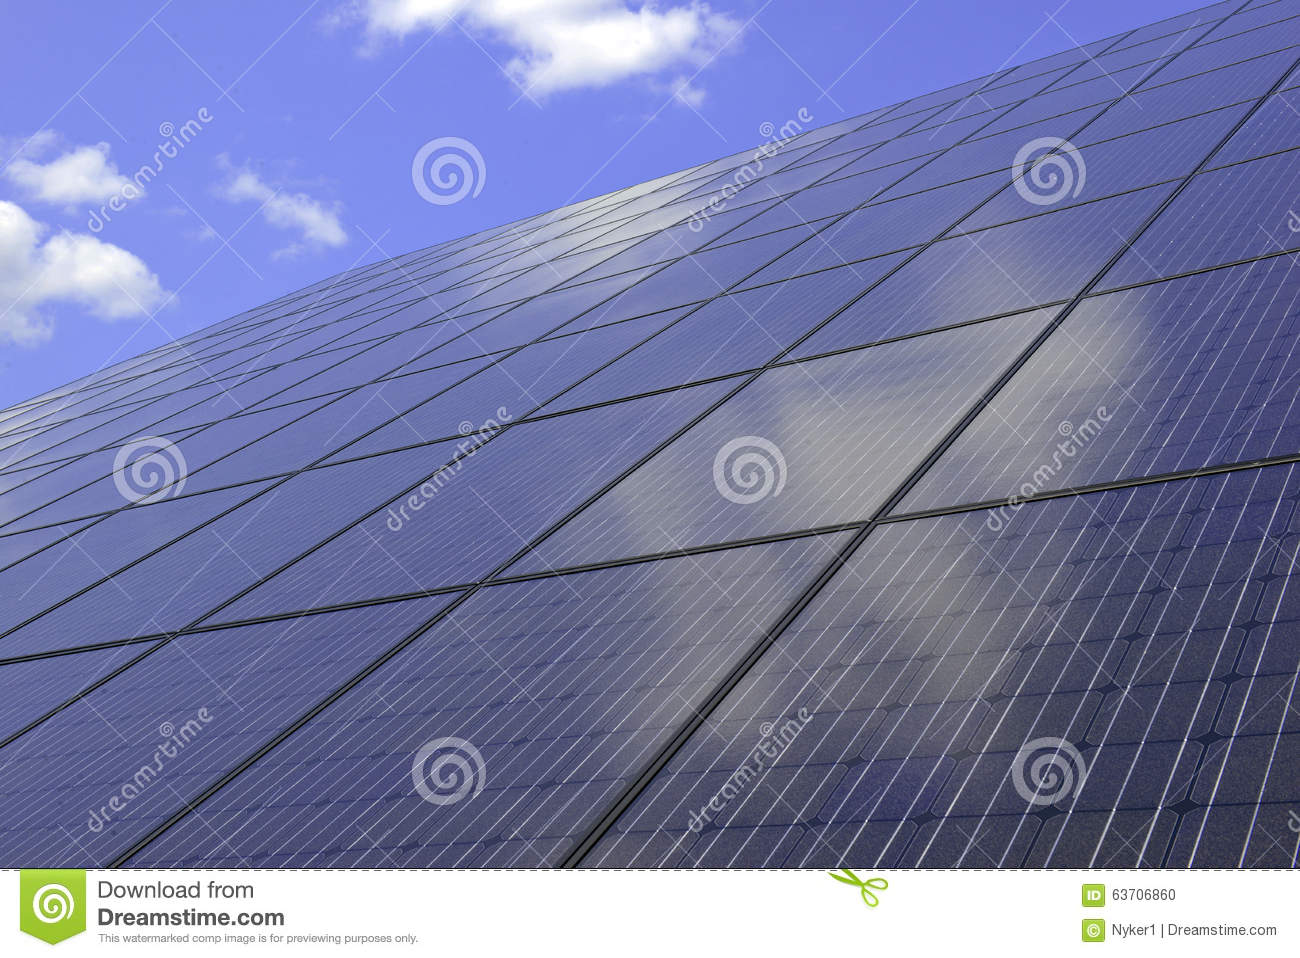 Solar Panels Making Use Of Altenative Energy Through